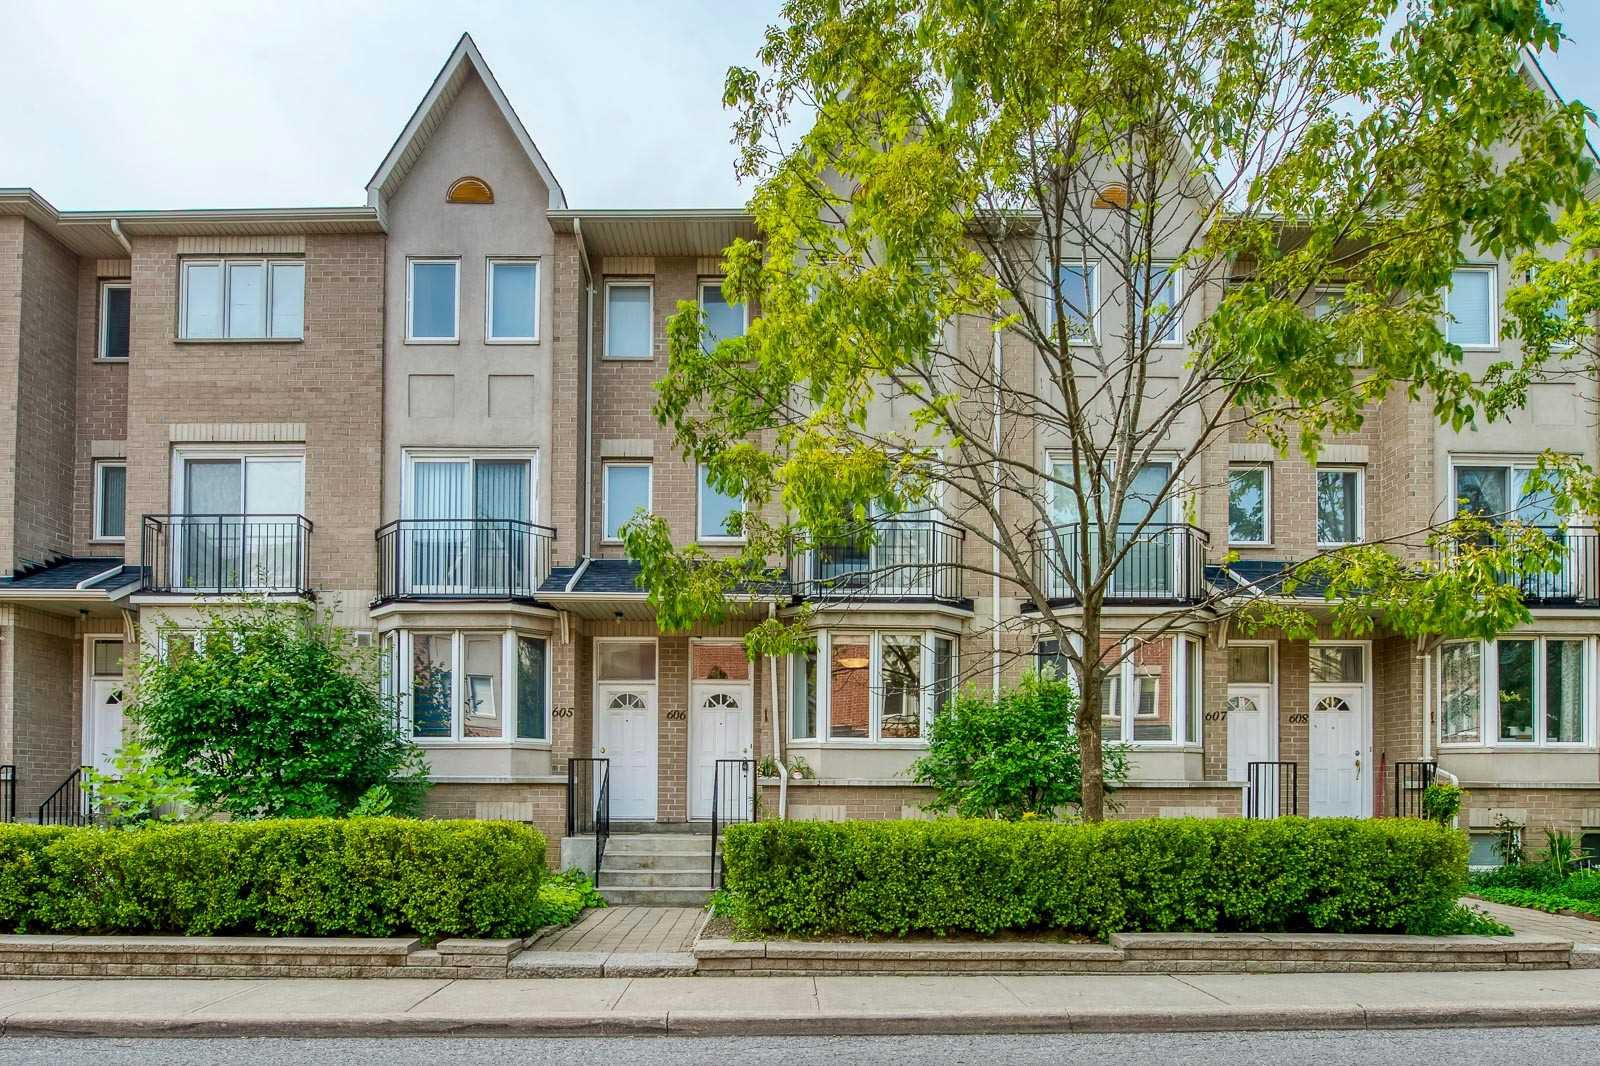 Main Photo: 606 19 Rosebank Drive in Toronto: Malvern Condo for sale (Toronto E11)  : MLS®# E4914391